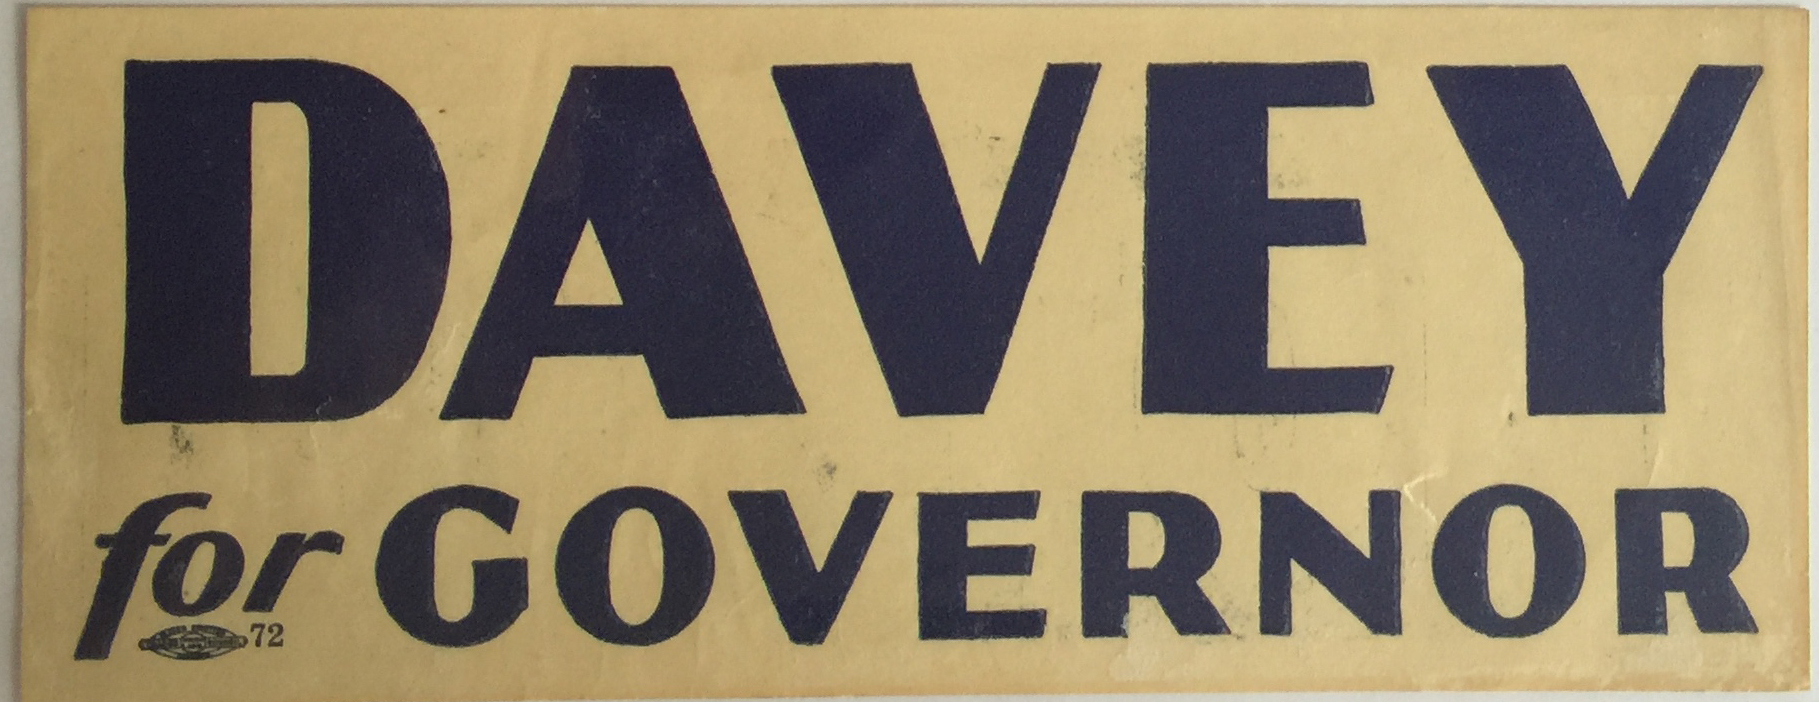 Sticker-gov1934 DAVEY 2.jpg